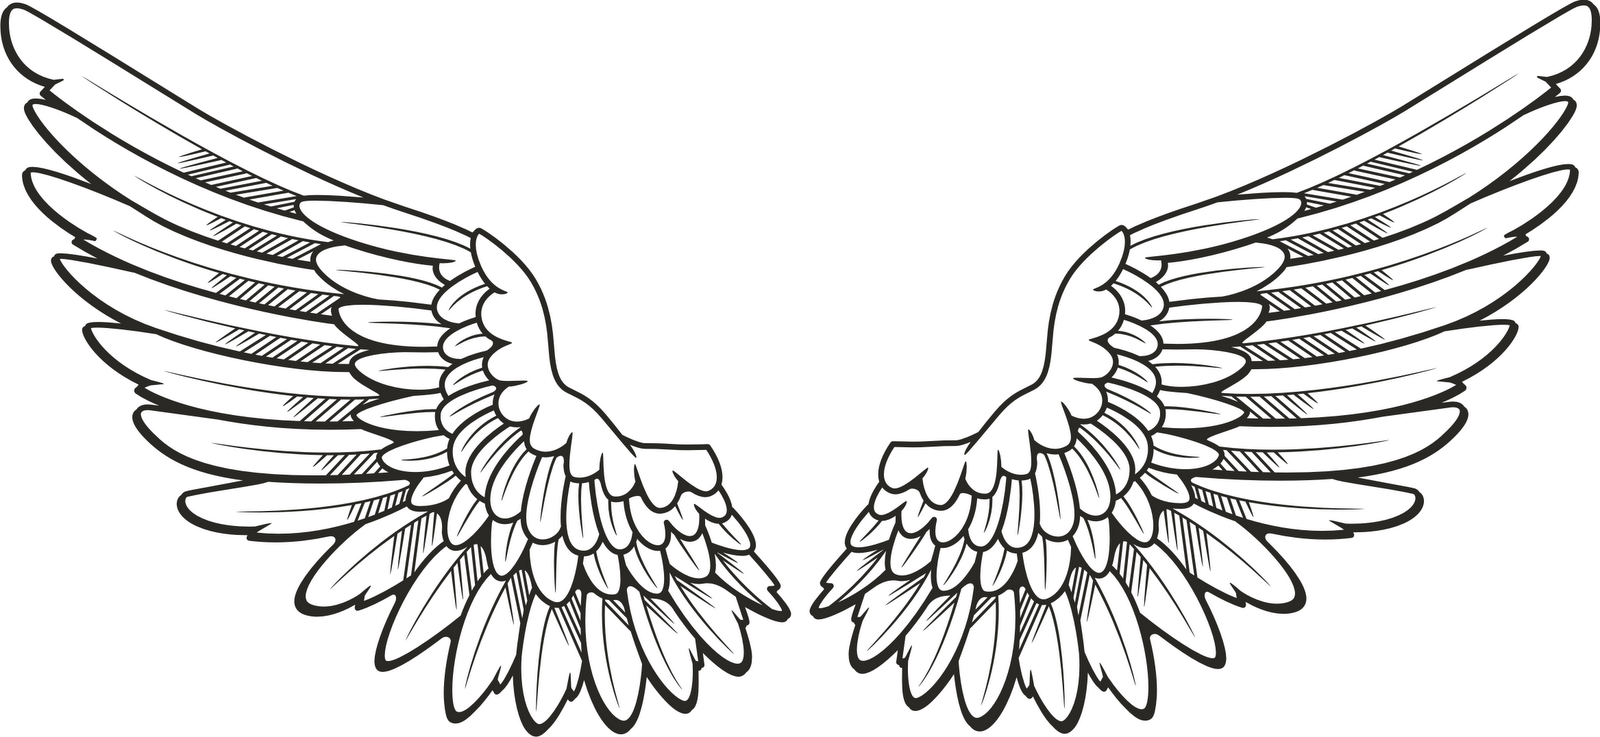 clip download Free wings cliparts download. Wing clipart